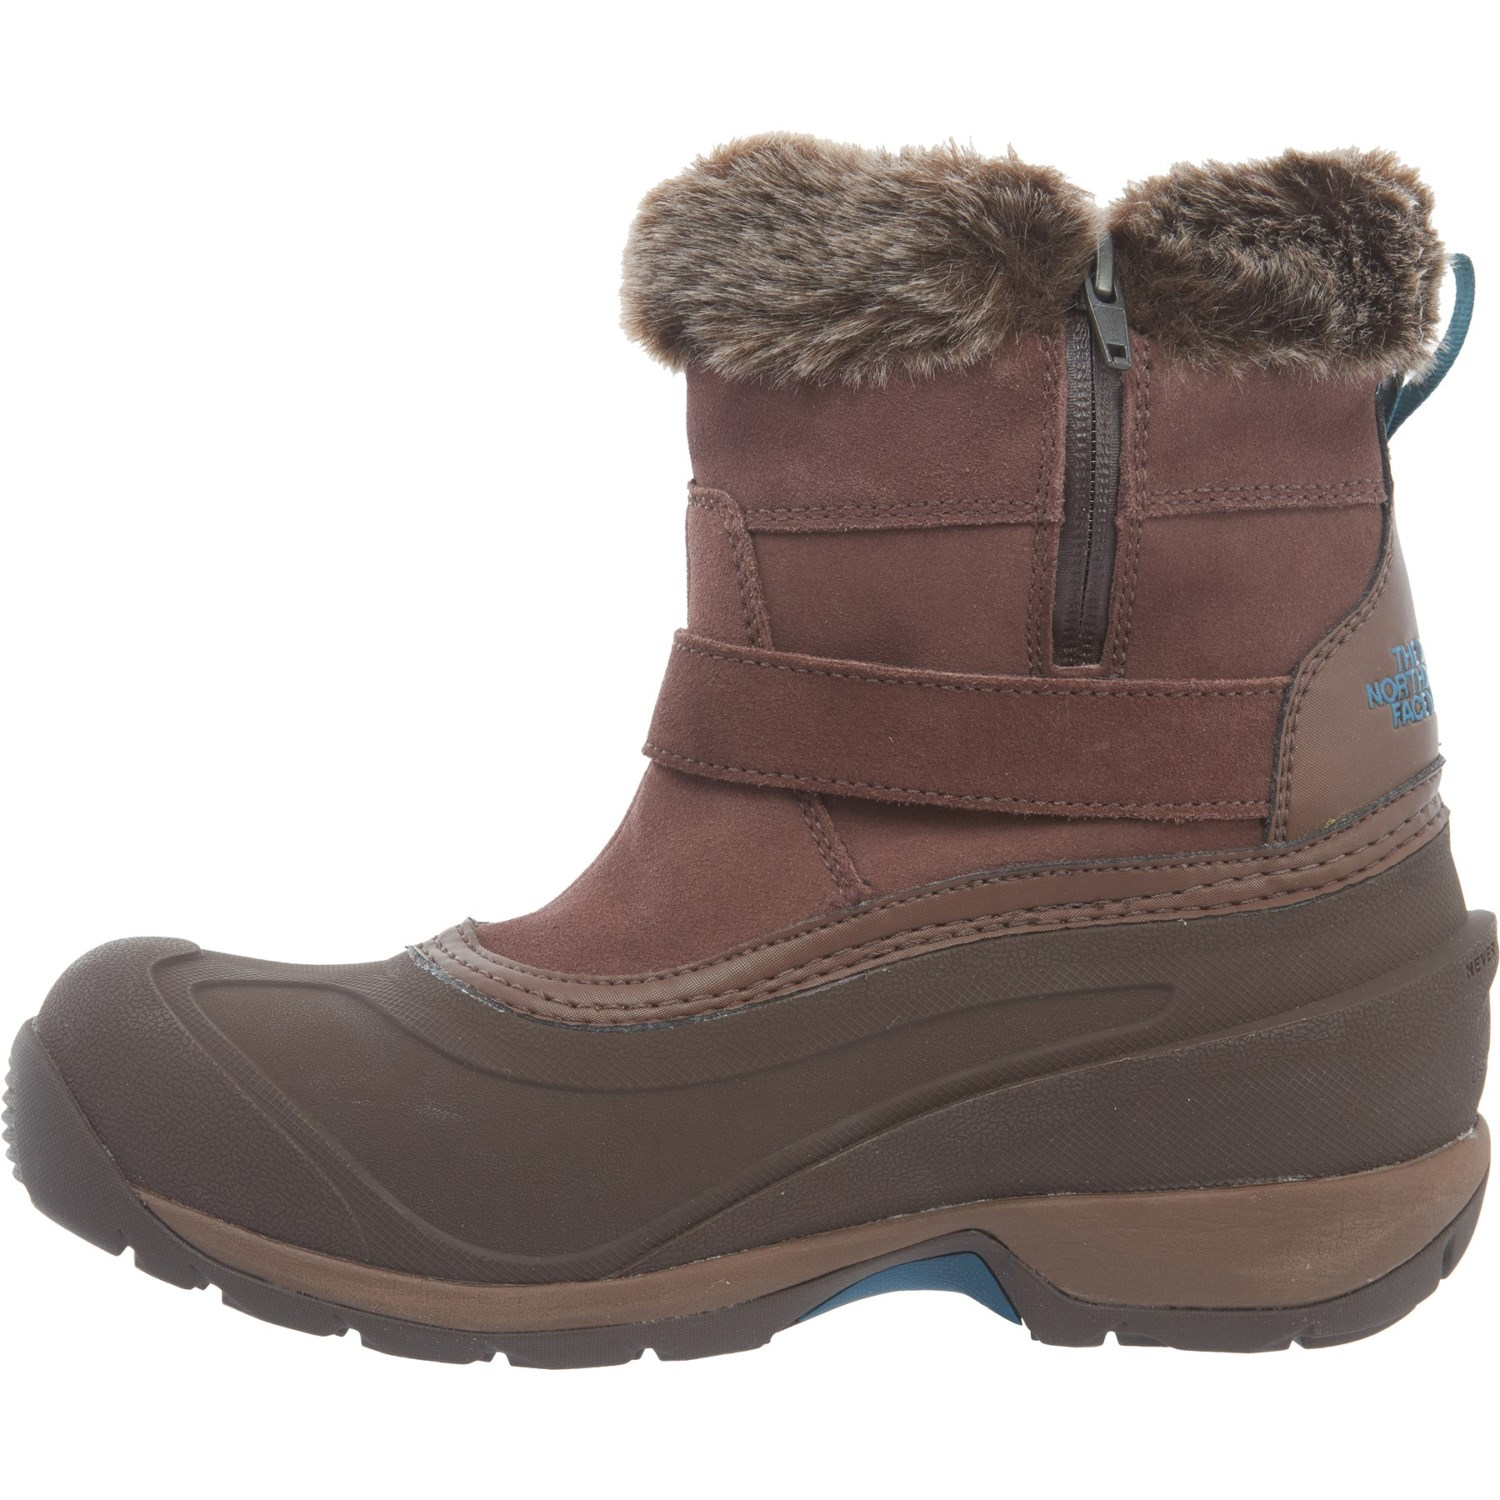 3005a817c The North Face Chilkat III Pull-On Boots (For Women)